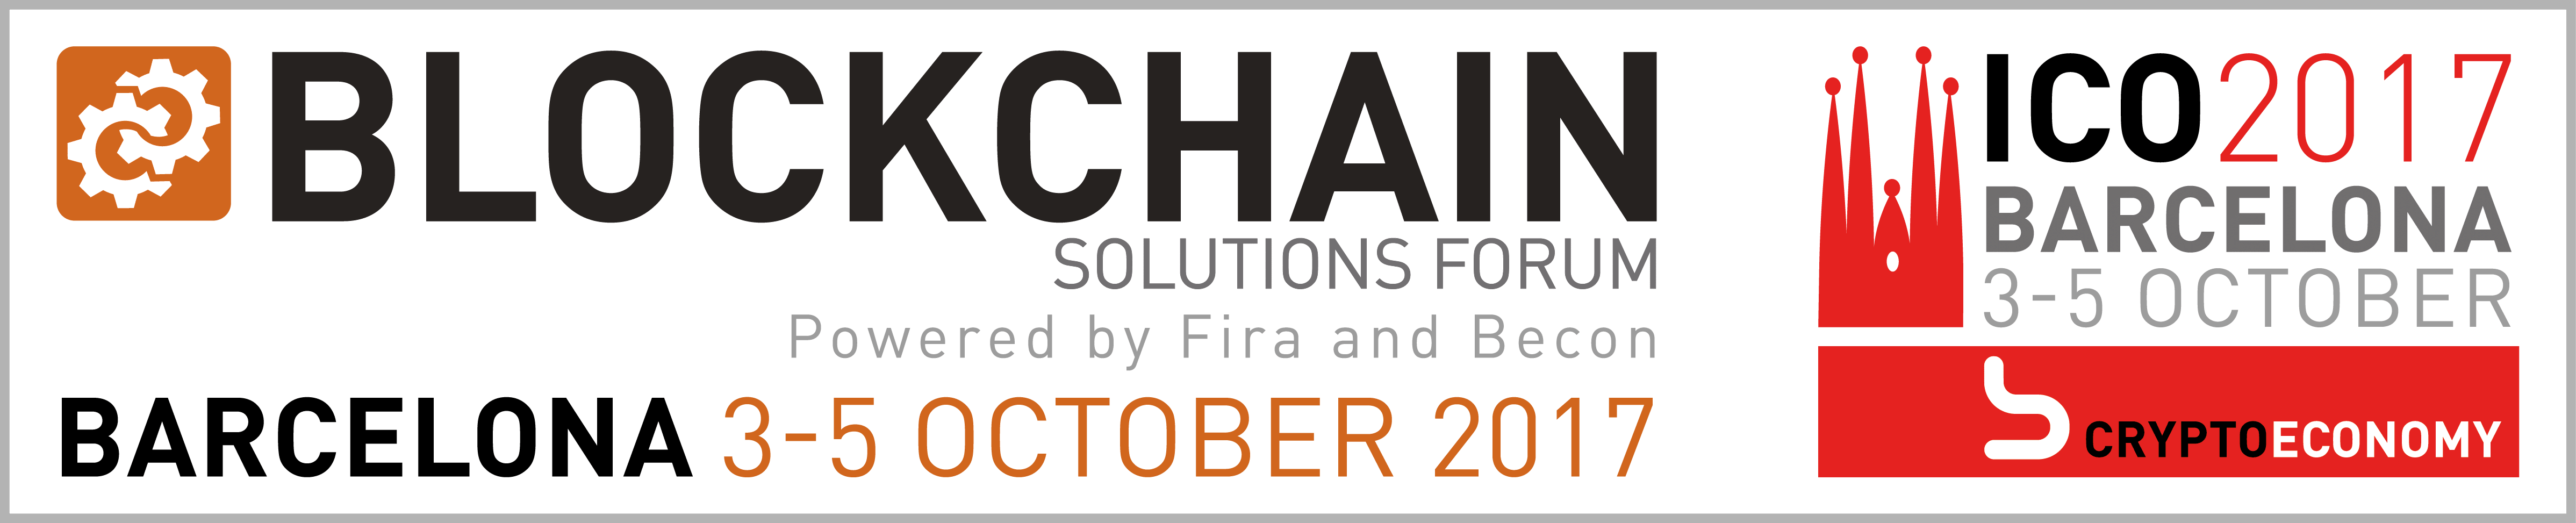 Blockchain Solution Forum Barcelona